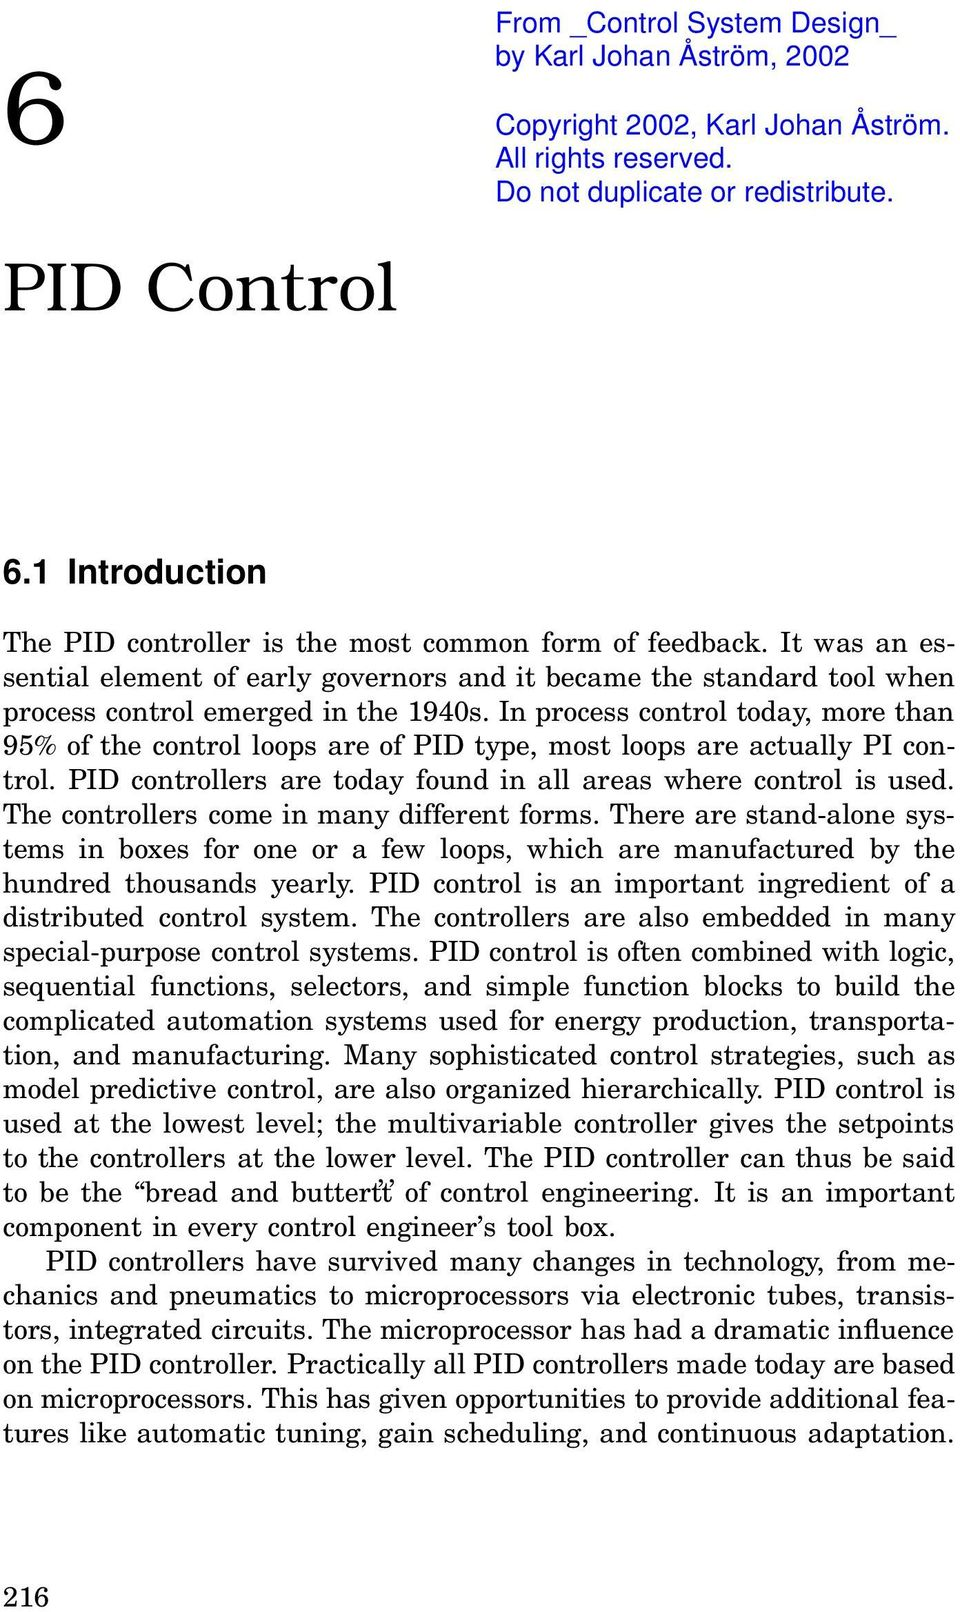 In process control today, more than 95% of the control loops are of PID type, most loops are actually PI control. PID controllers are today found in all areas where control is used.